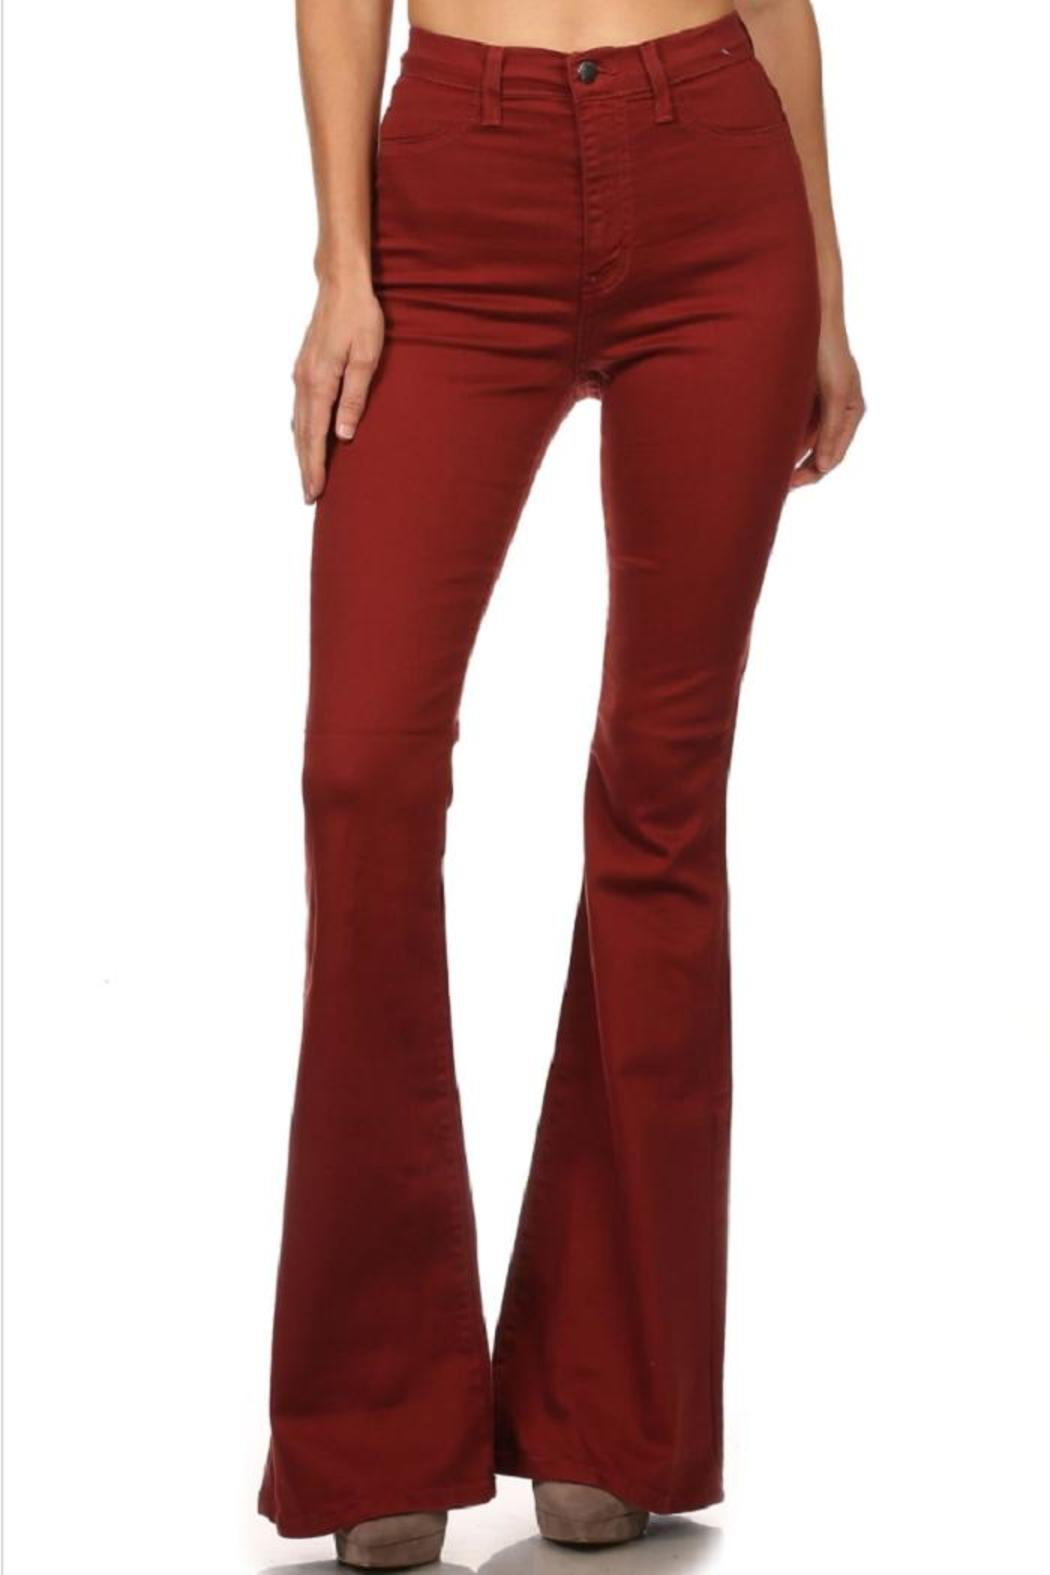 Vibrant Miu Bell Bottom Jeans From Missouri By Domi More